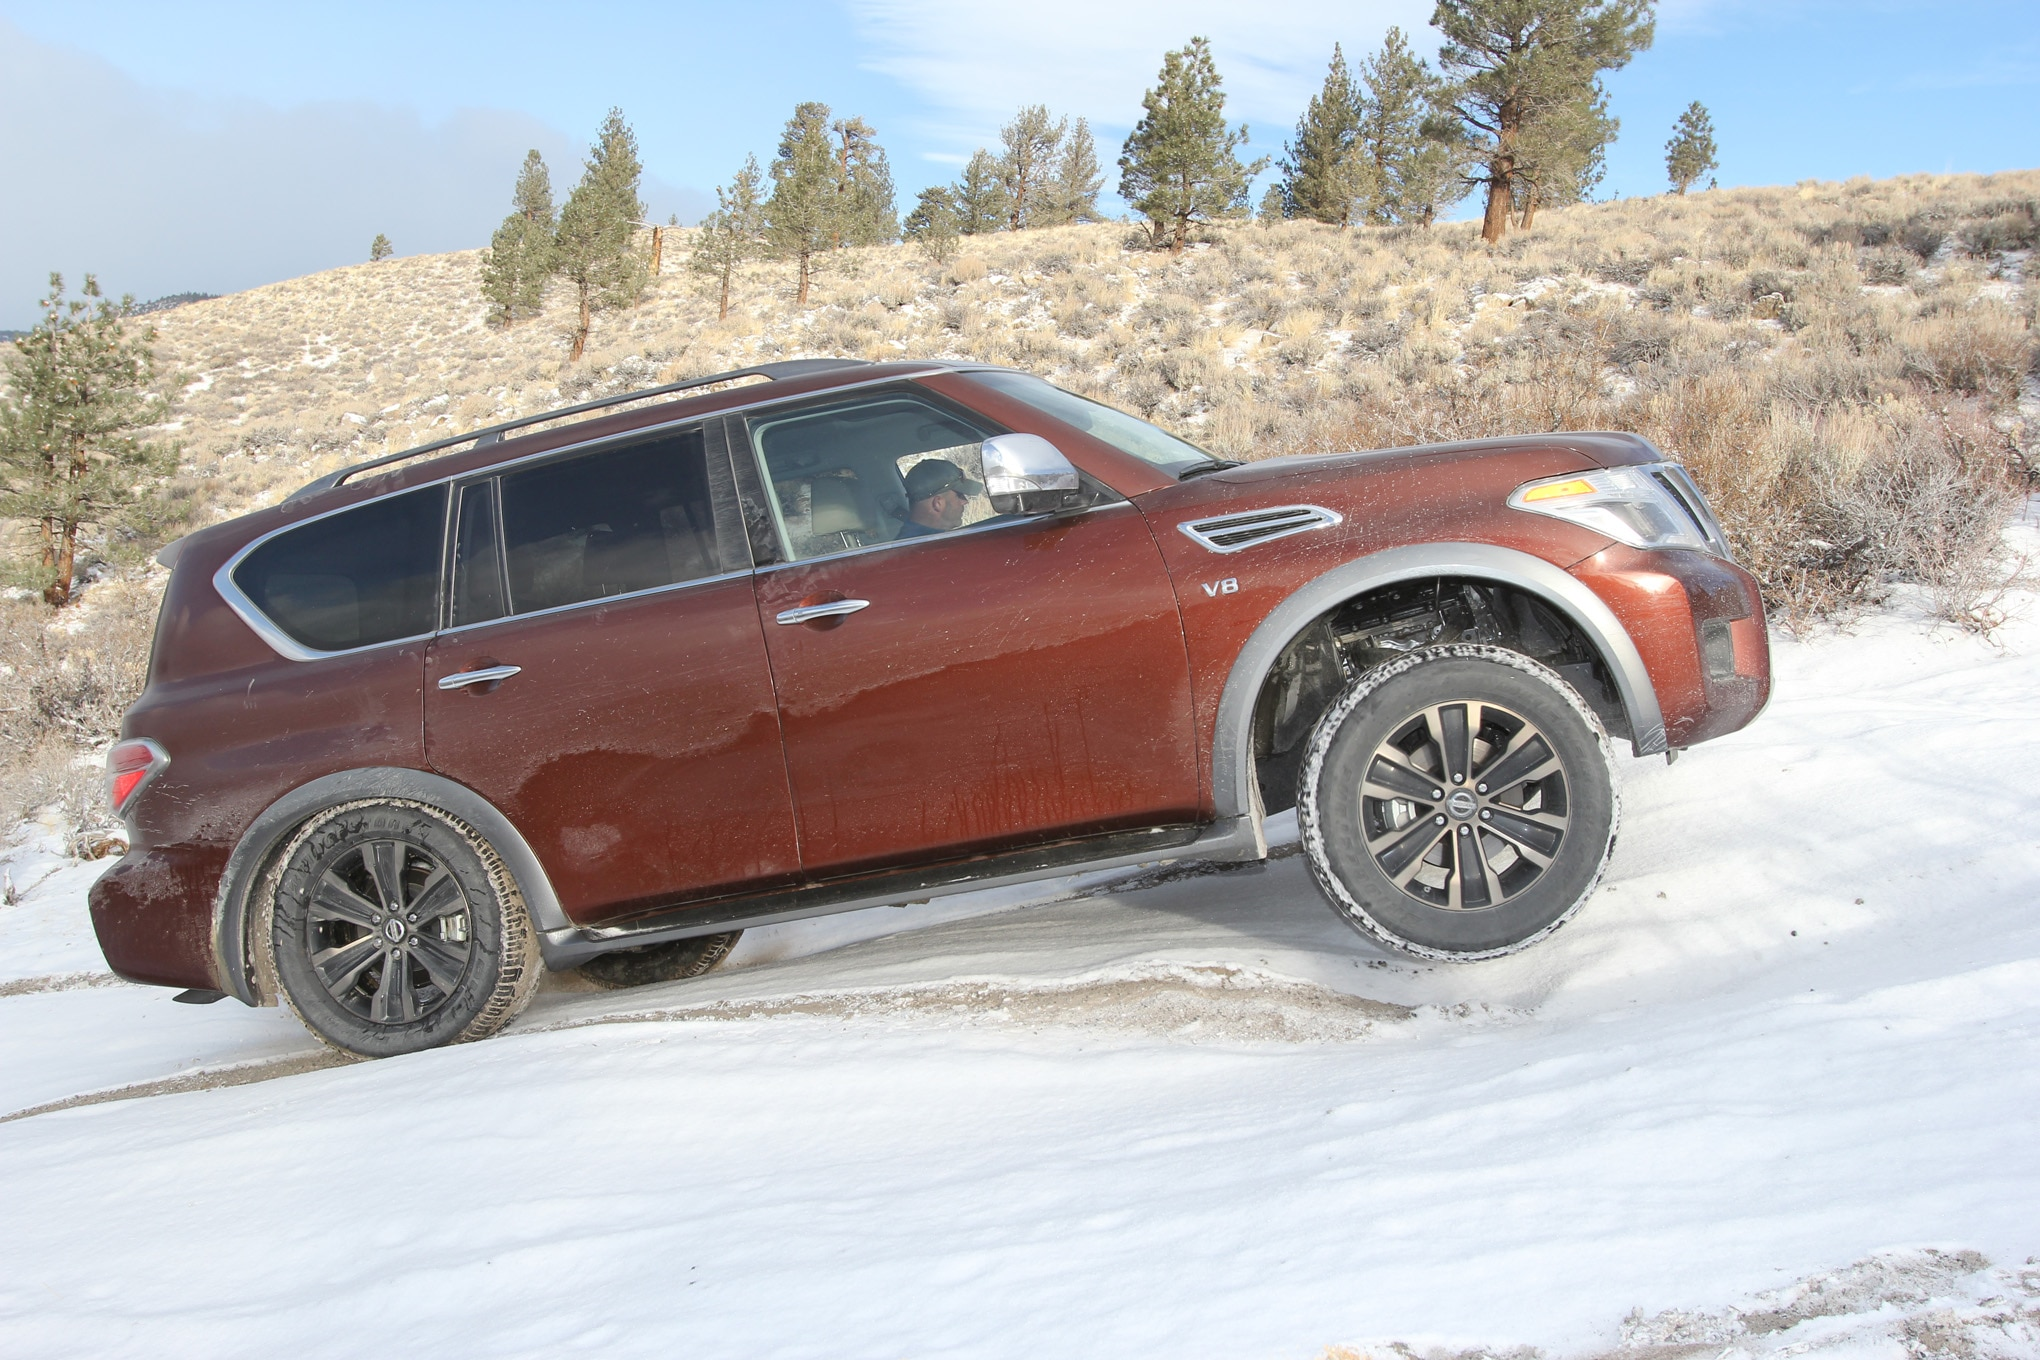 017 suv of the year